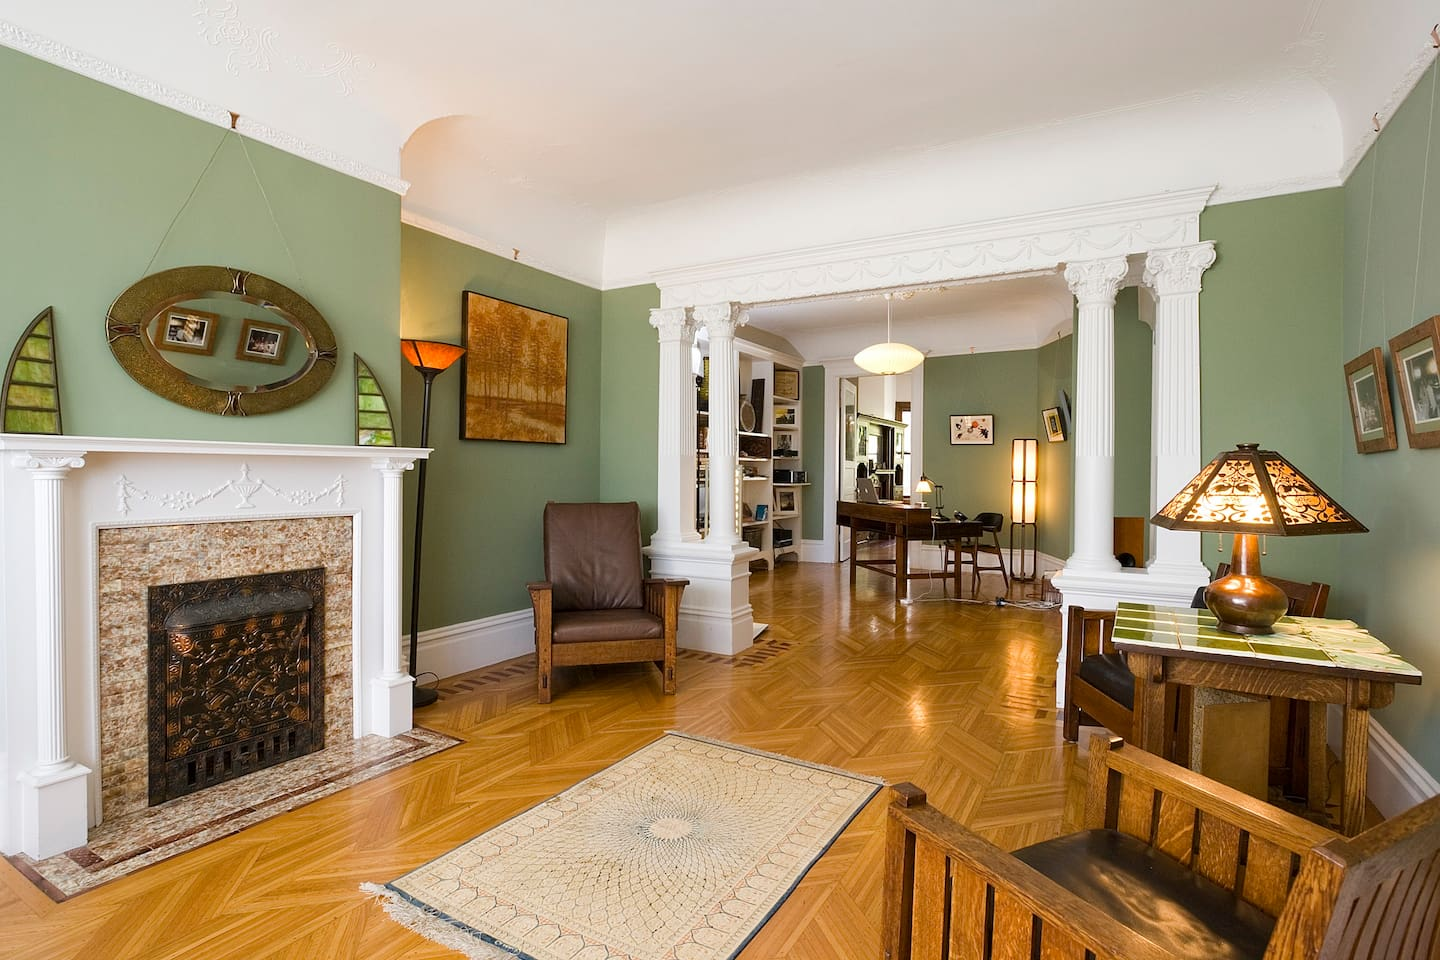 Living Room with Inlaid floors, tile fireplace, Stickley Arts and Crafts Furniture